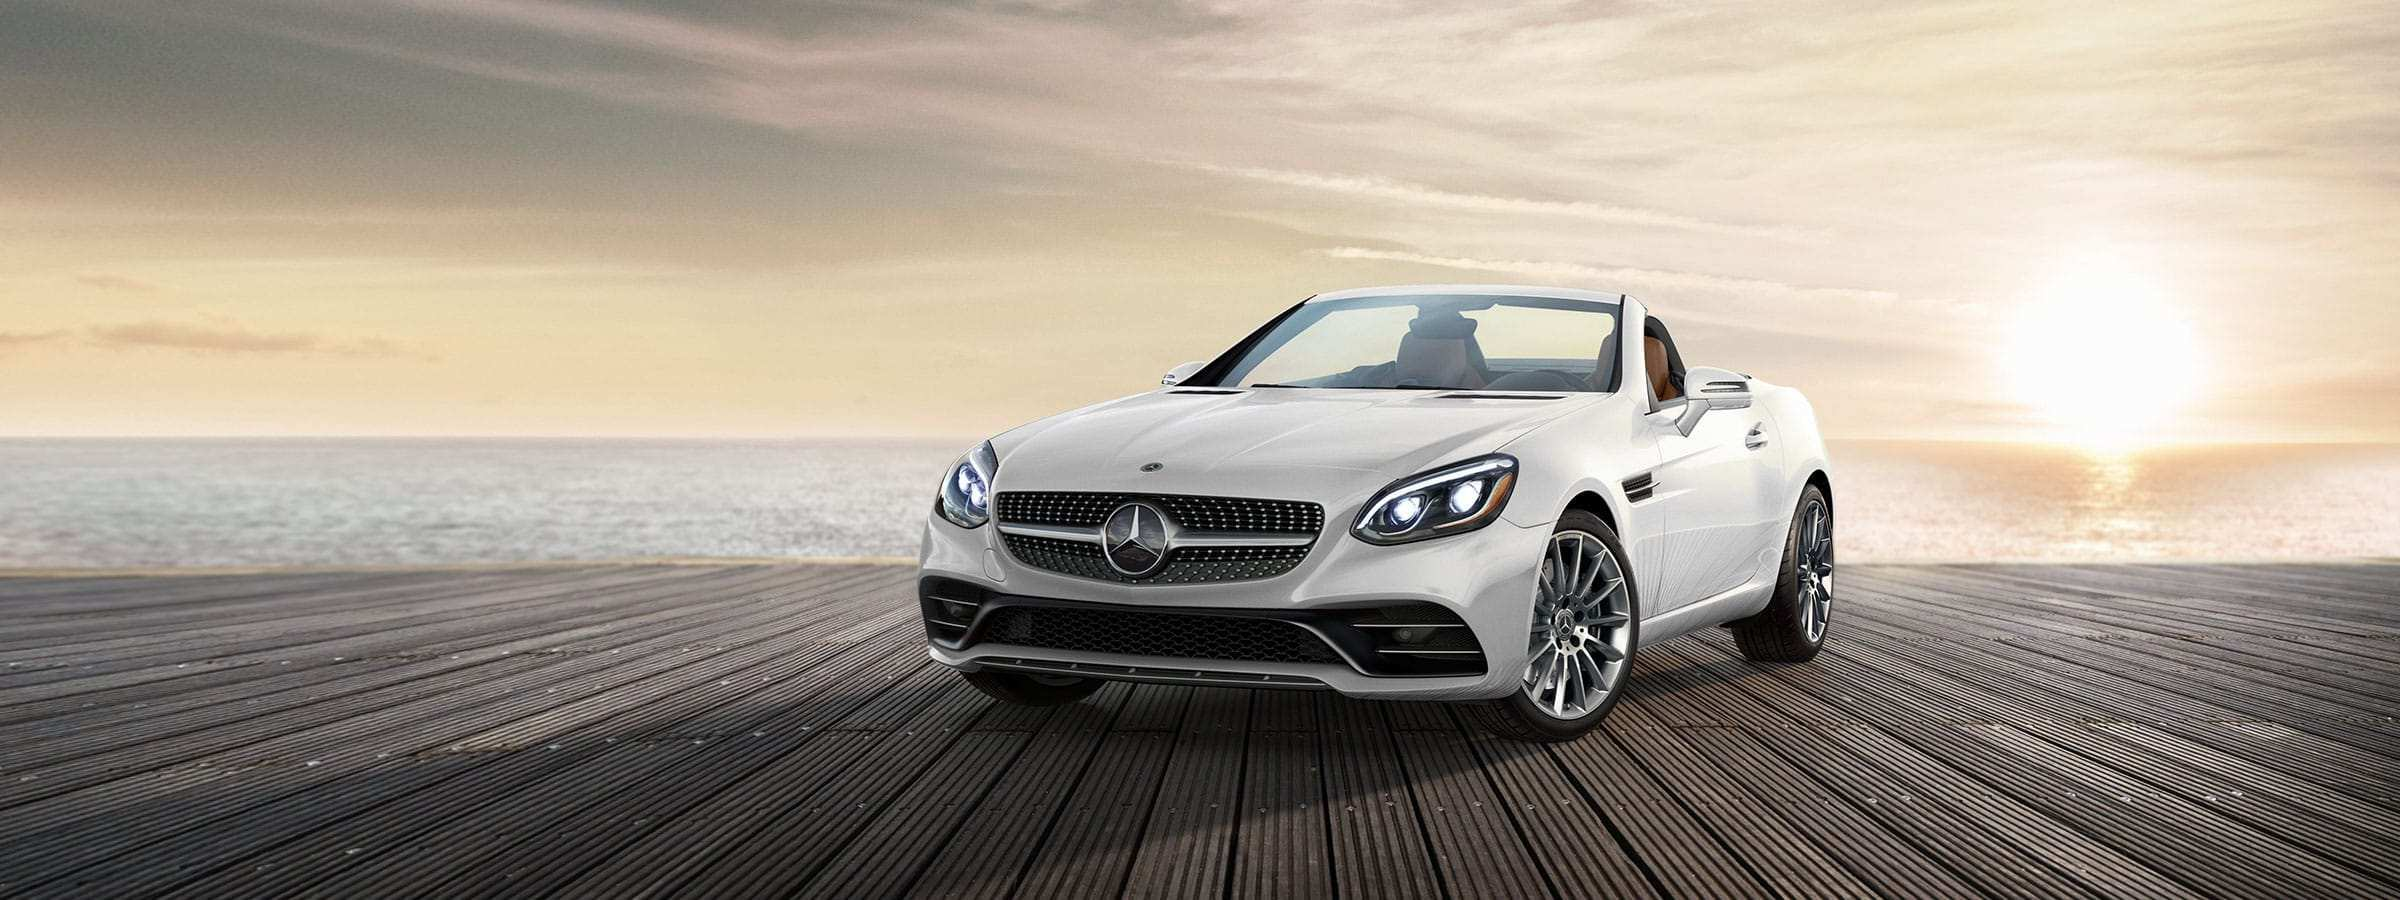 22 New Mercedes Slc 2019 Prices